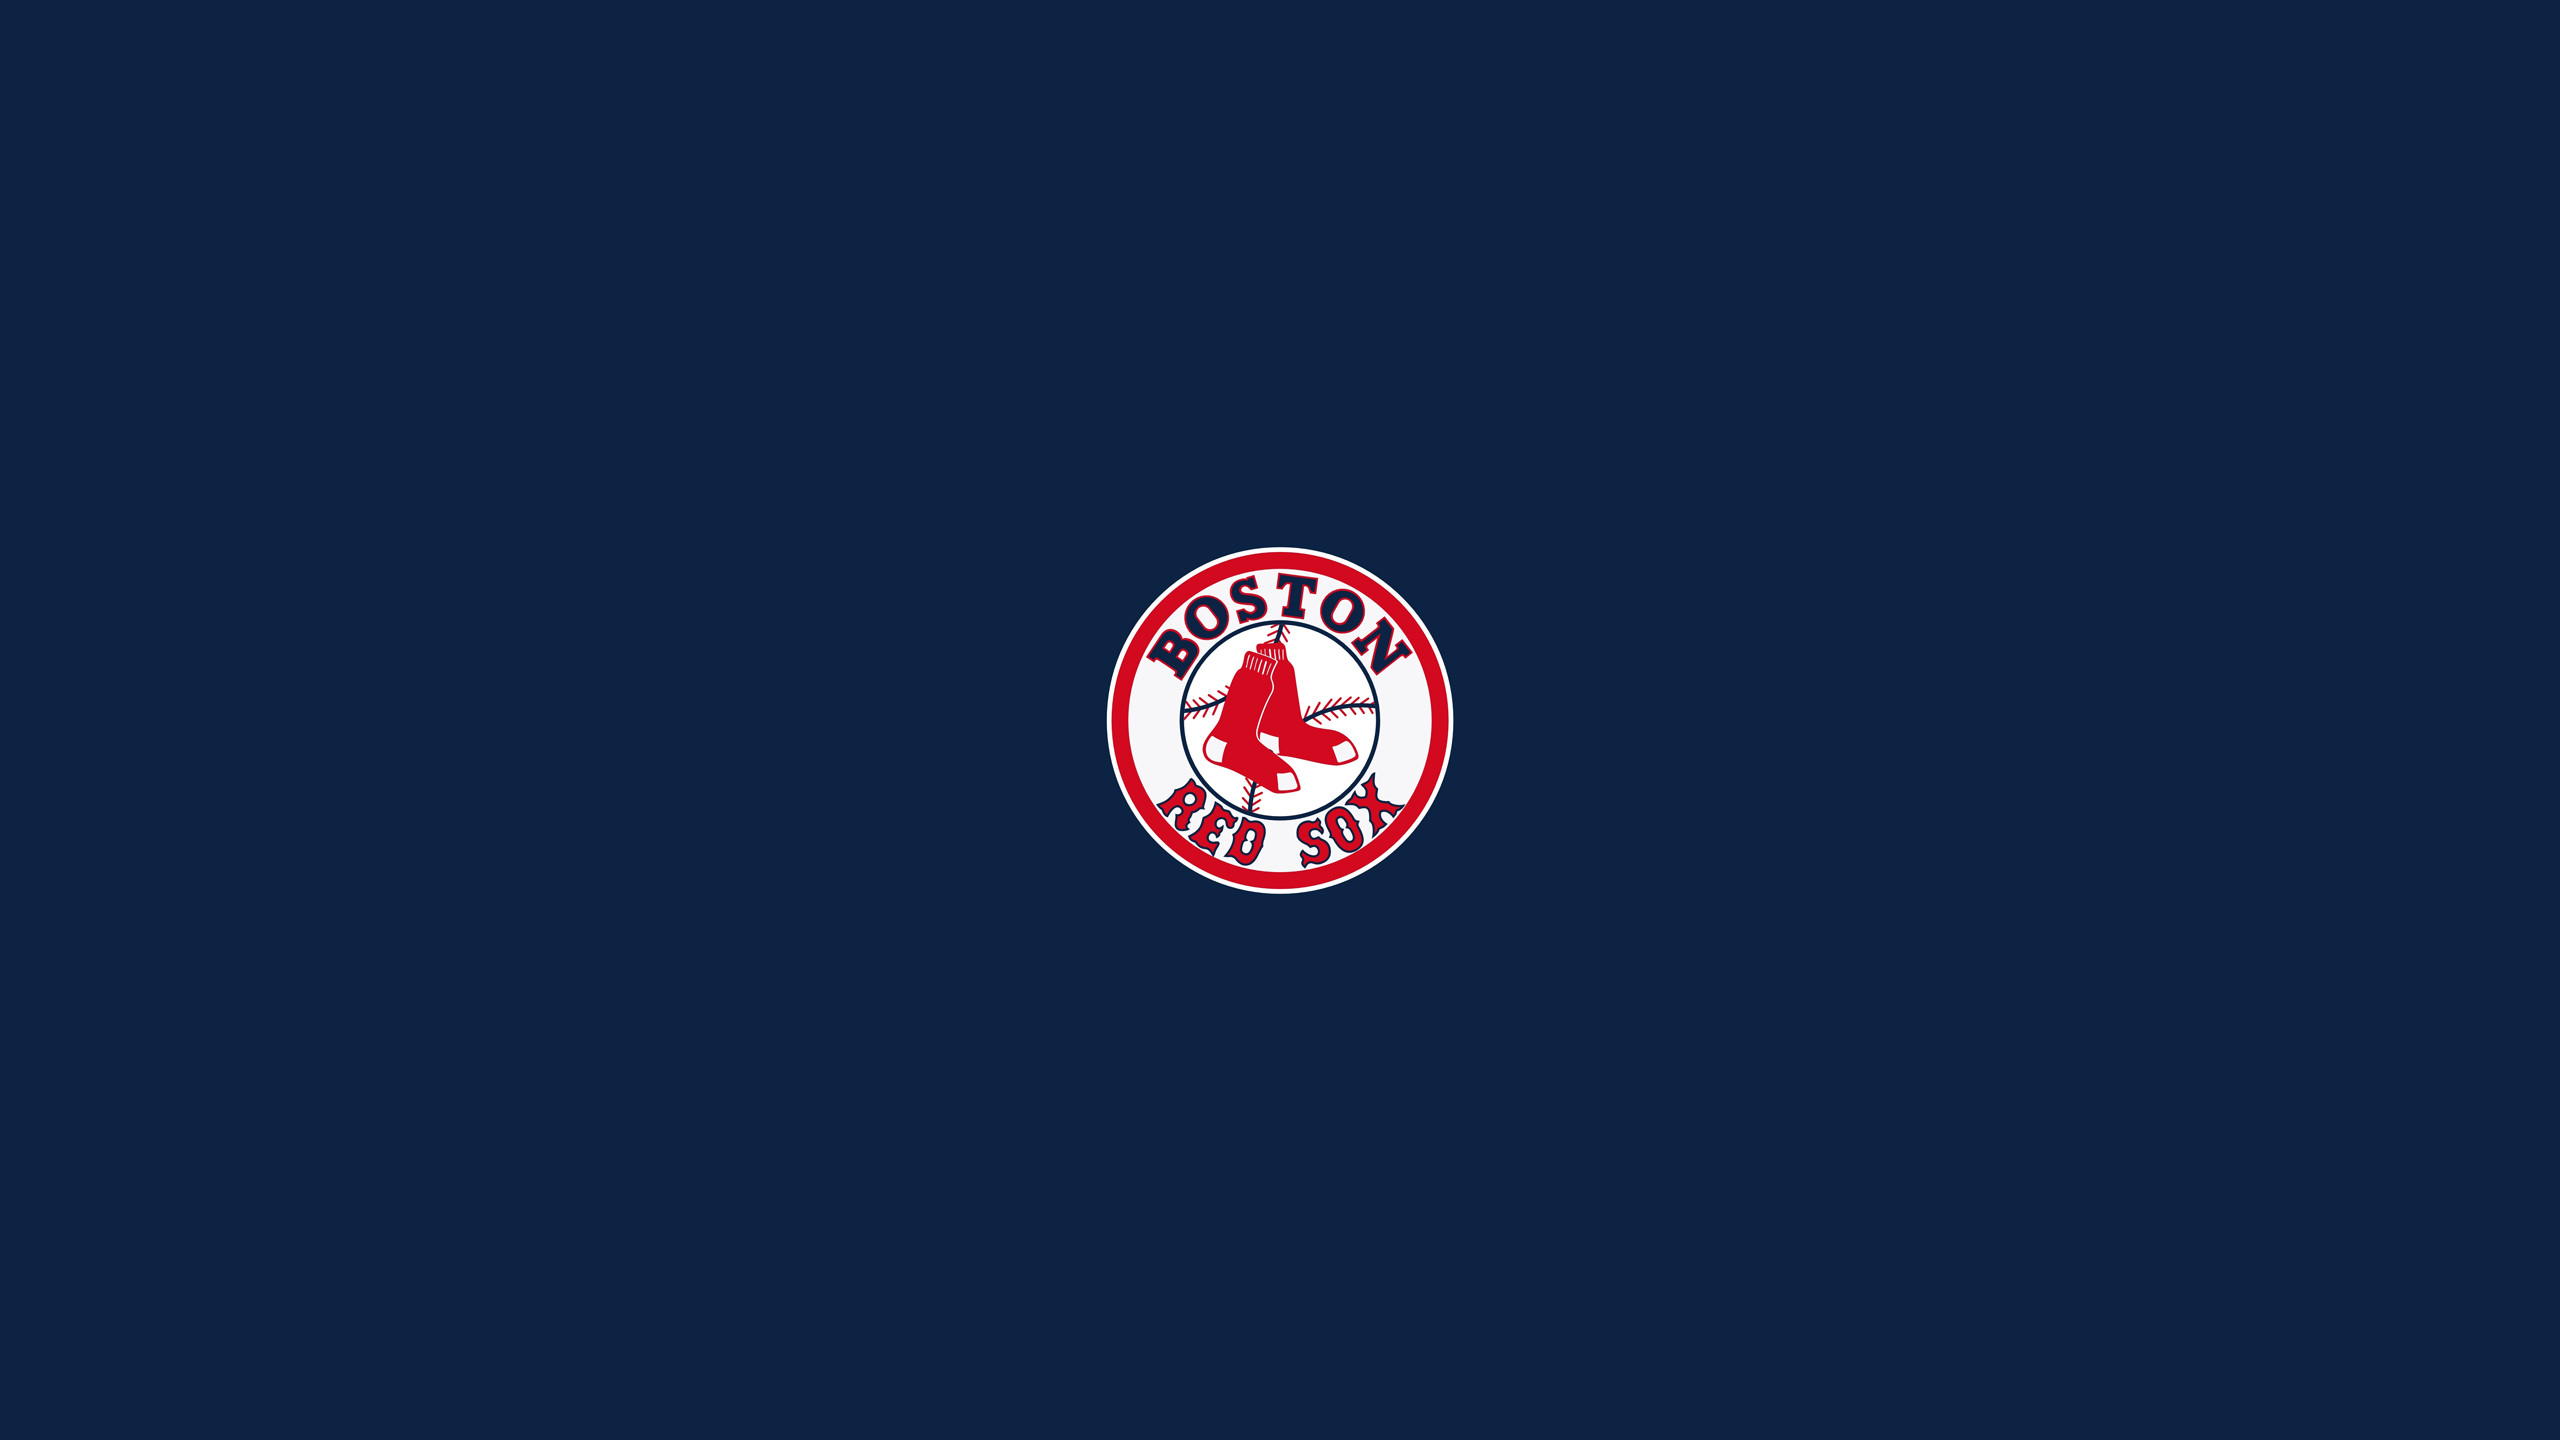 Red Sox-Wallpaper-UED59